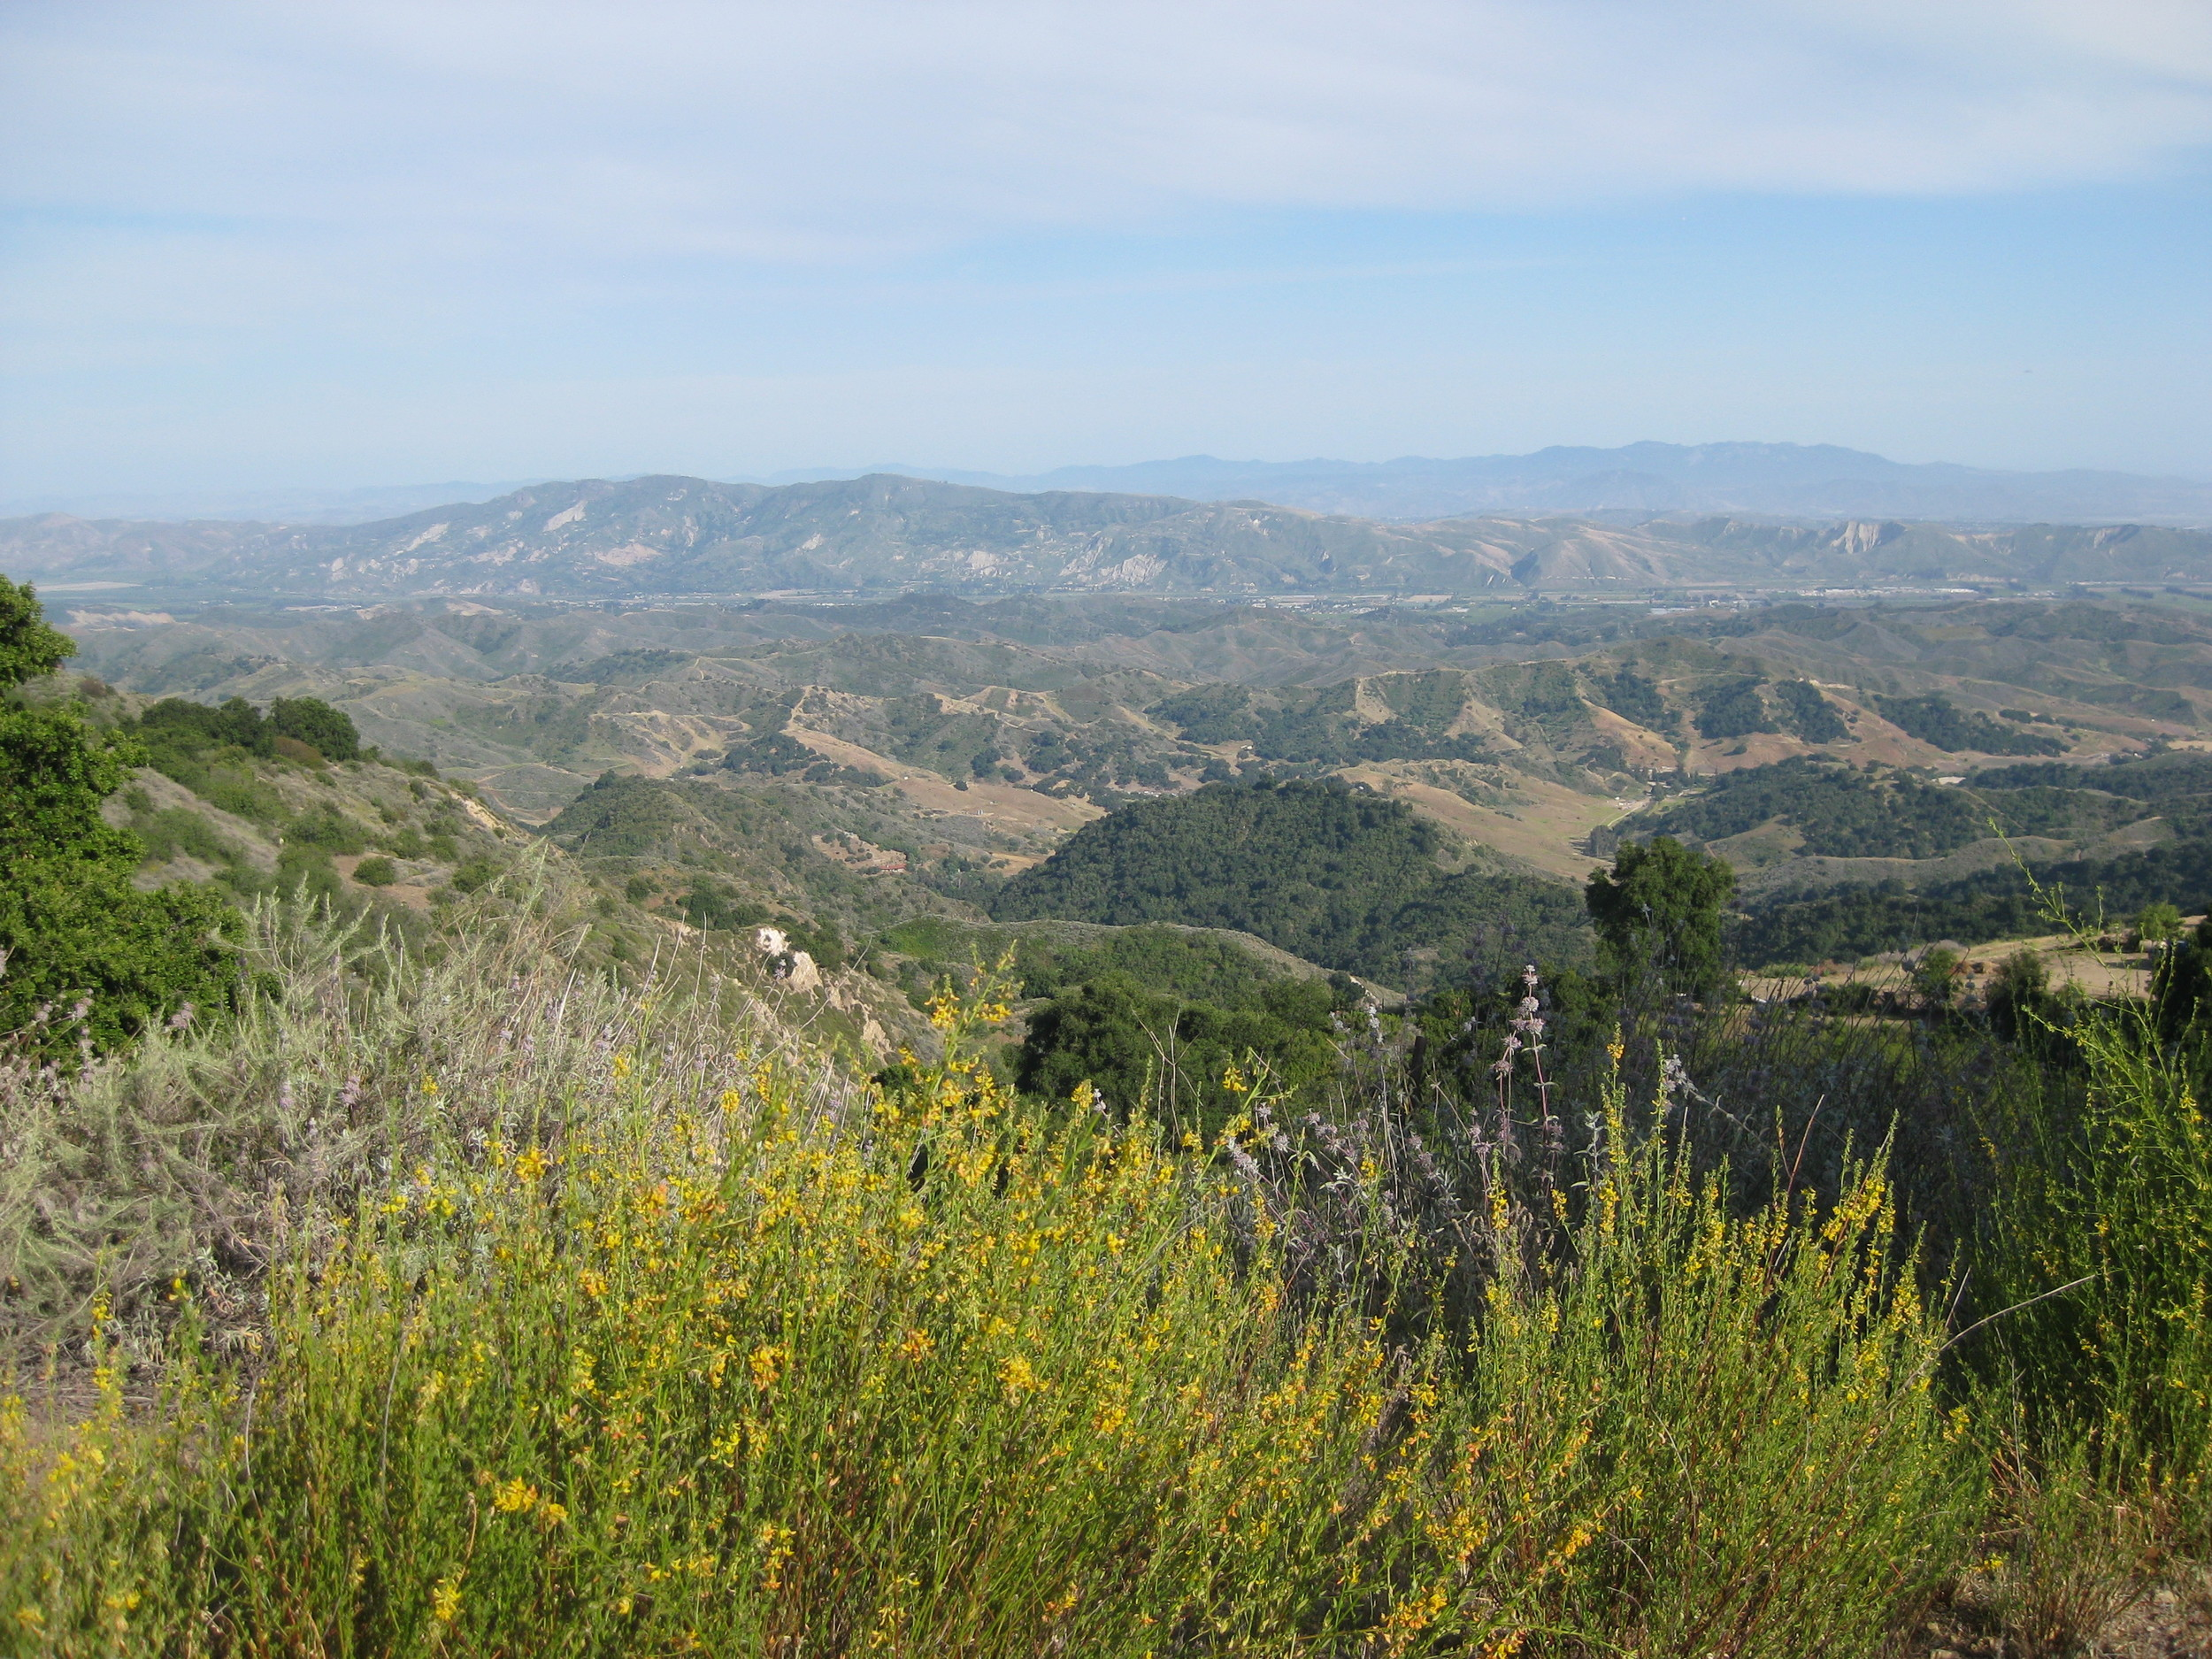 THE VIEW TOWARD SANTA PAULA and the Heritage Valley from Meher Mount. (Leslie Bridger photo, 2011.)